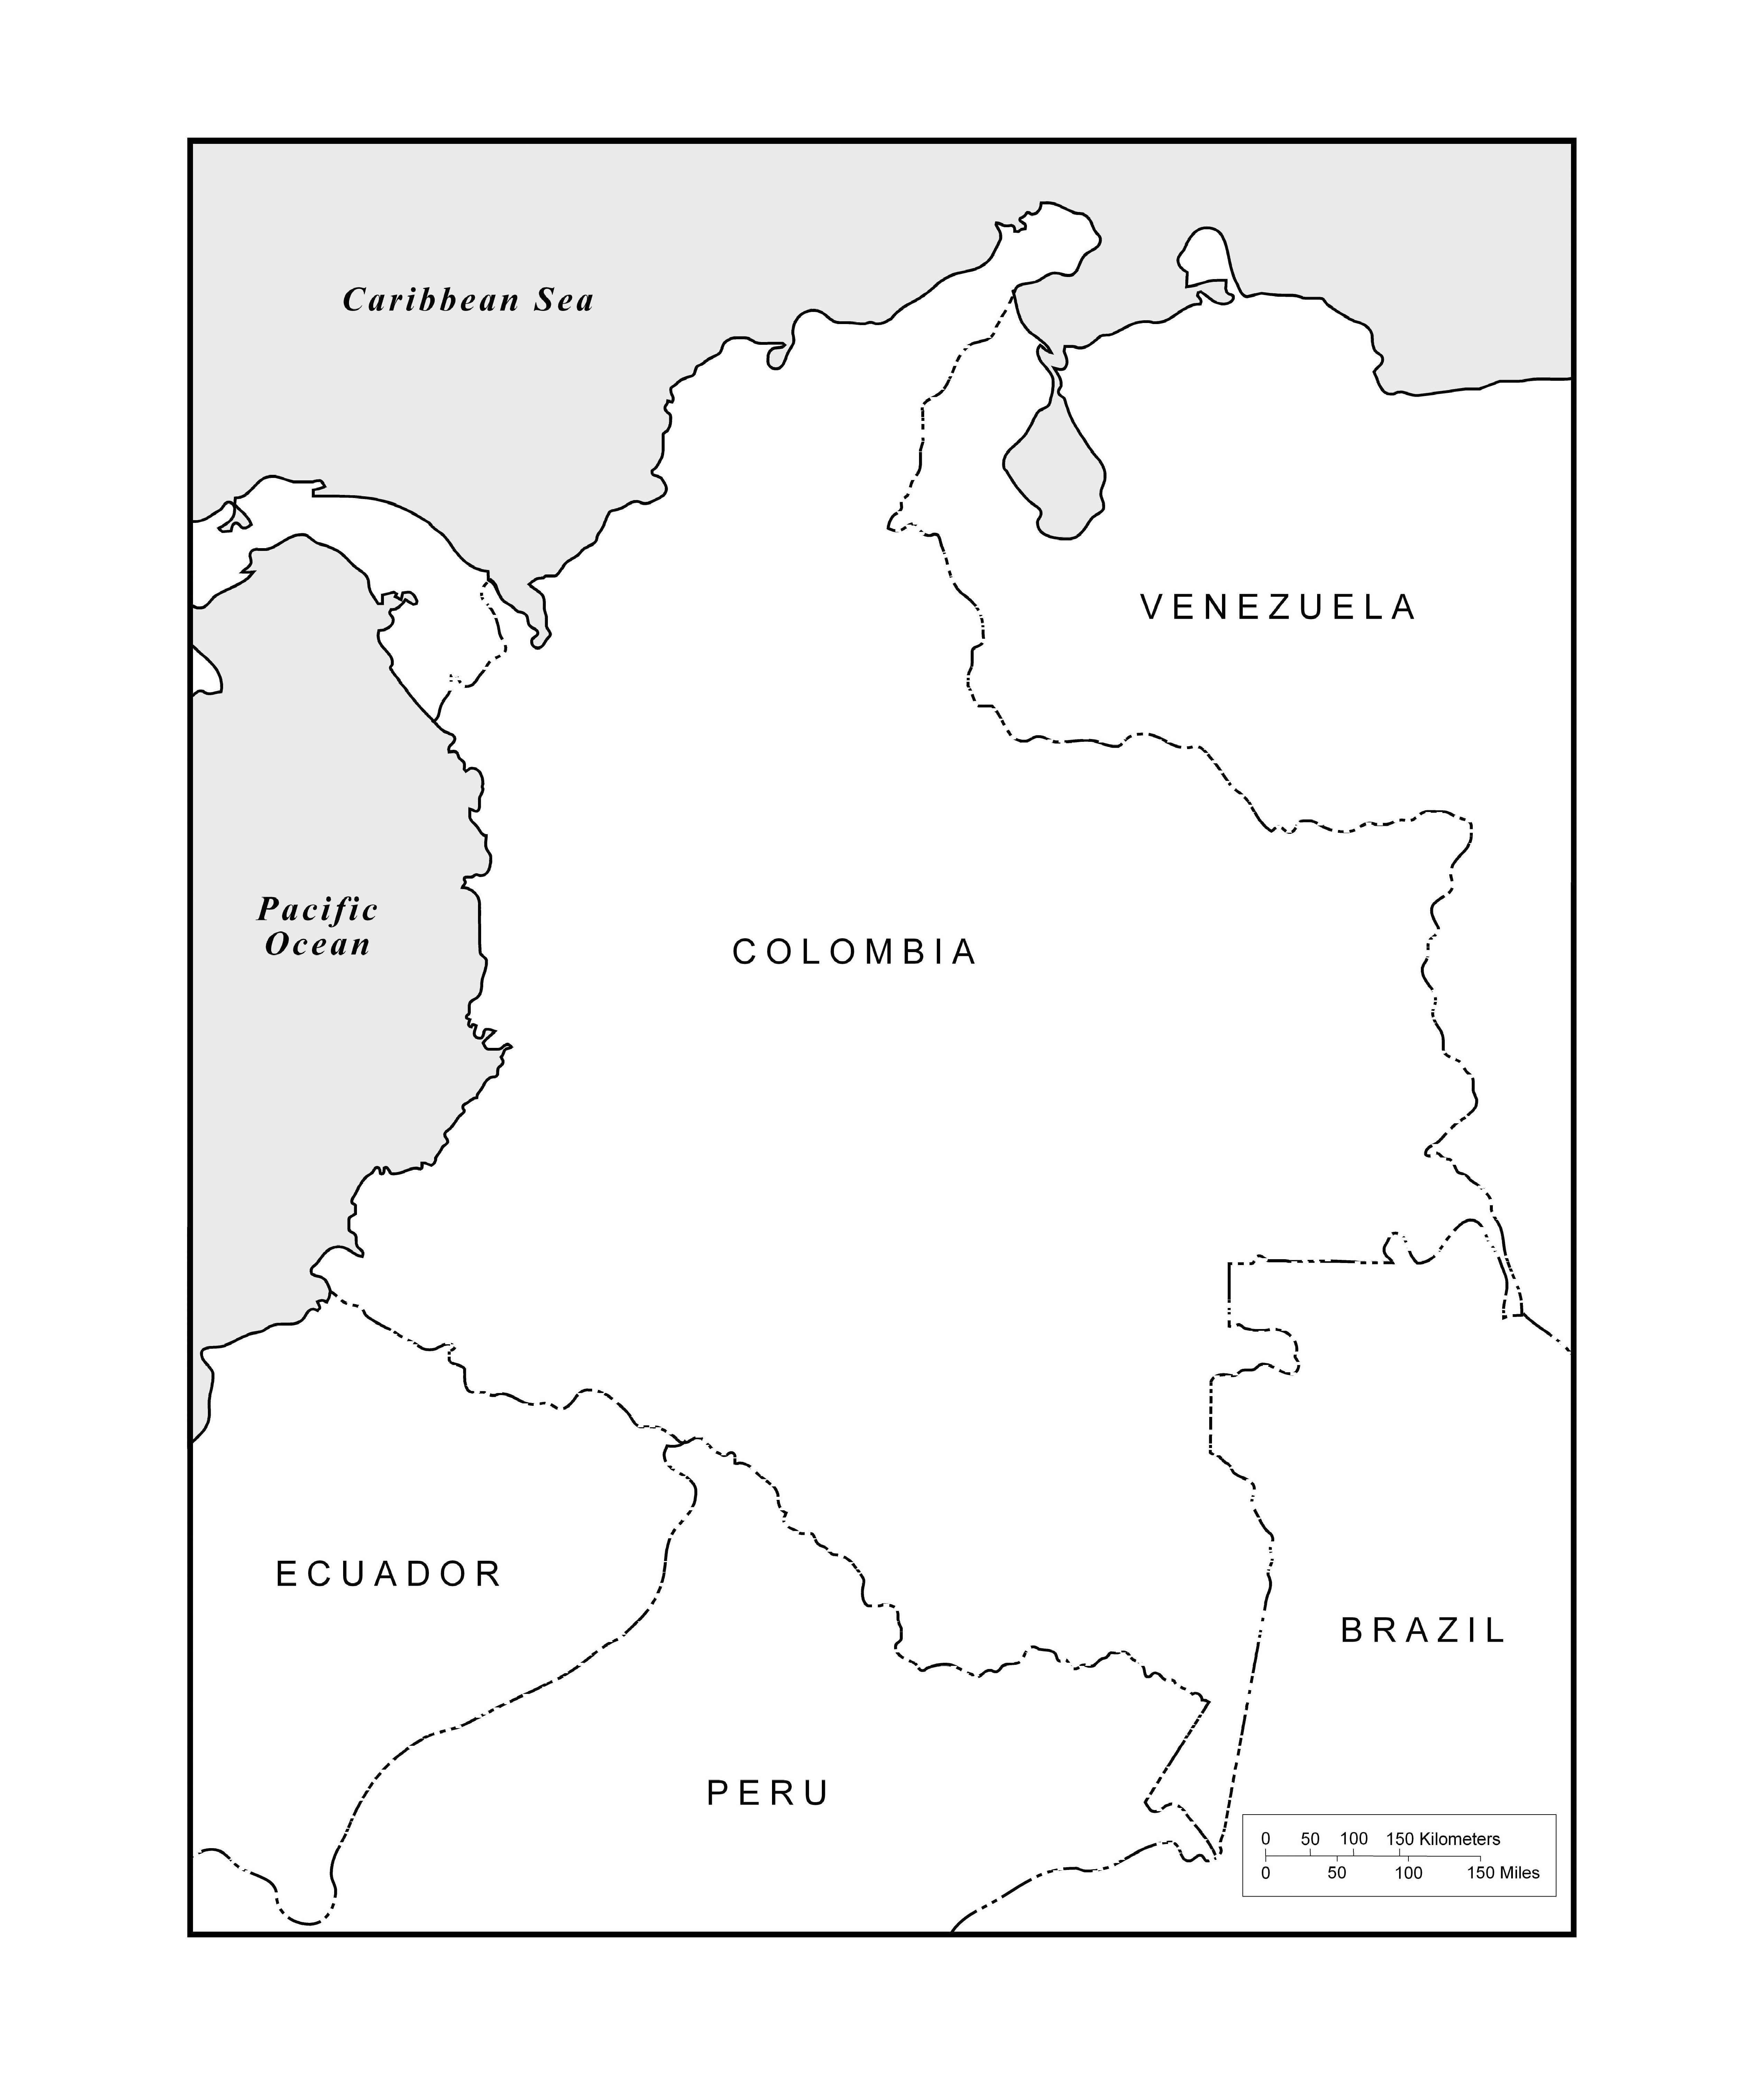 Maps Of The Americas Page - Central america map blank pdf